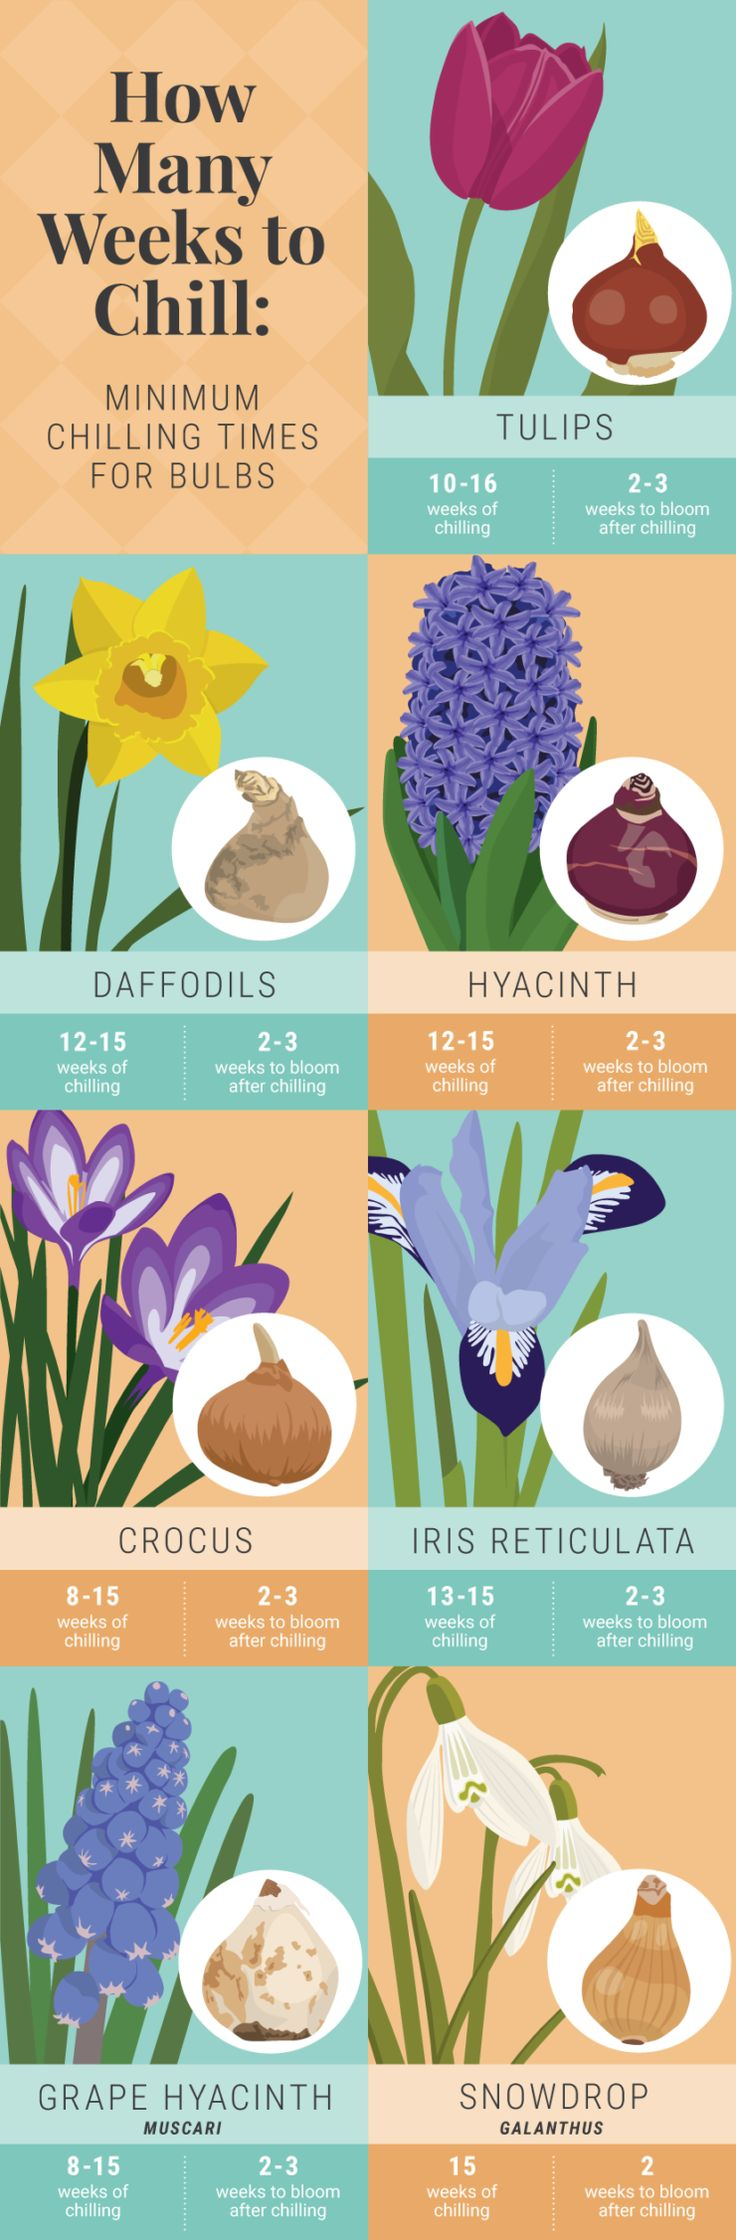 Growing bulbs indoors - FIX x The Sill